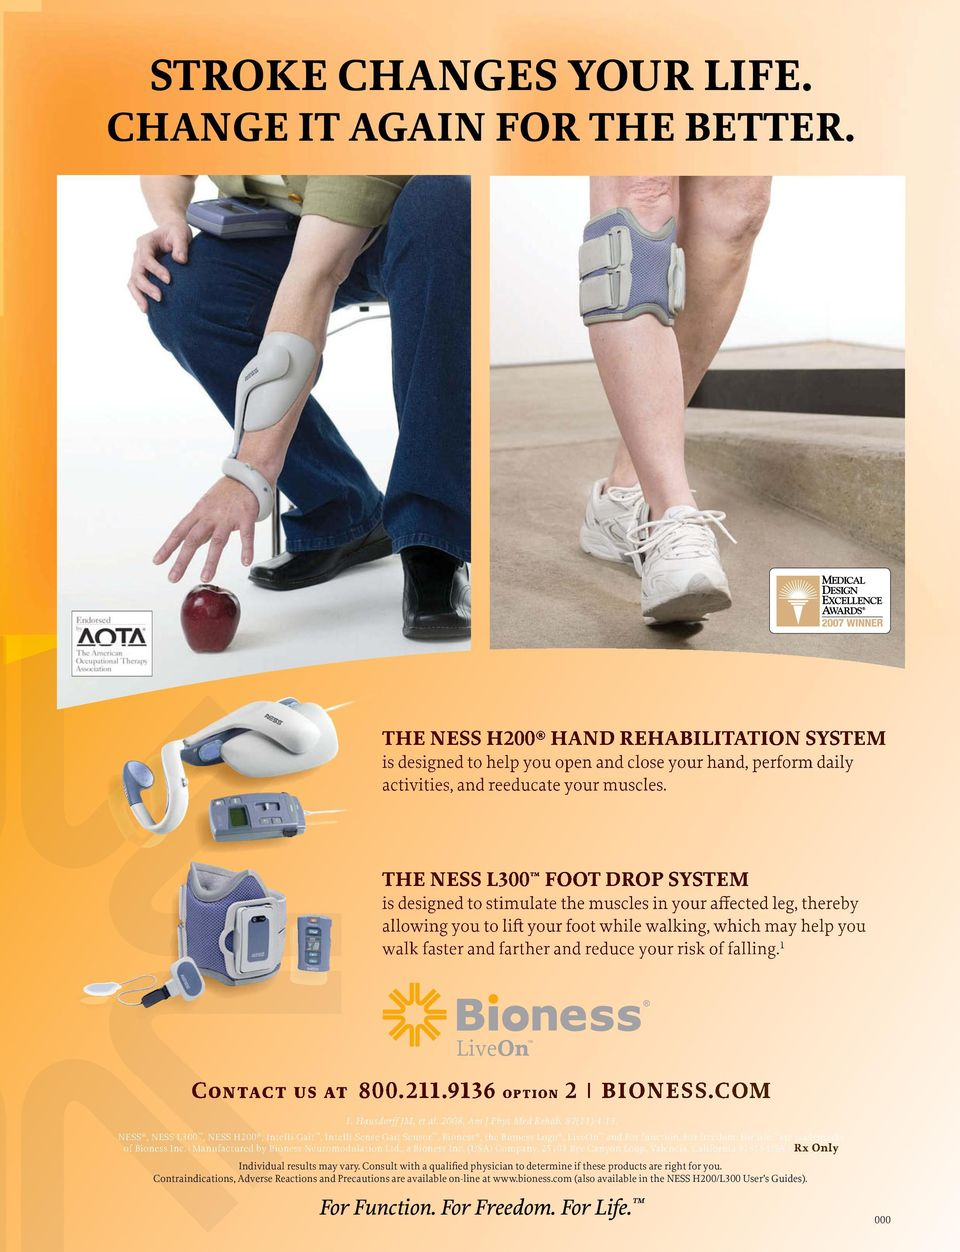 THE NESS L300 FOOT DROP SYSTEM is designed to stimulate the muscles in your affected leg, thereby allowing you to lift your foot while walking, which may help you walk faster and farther and reduce